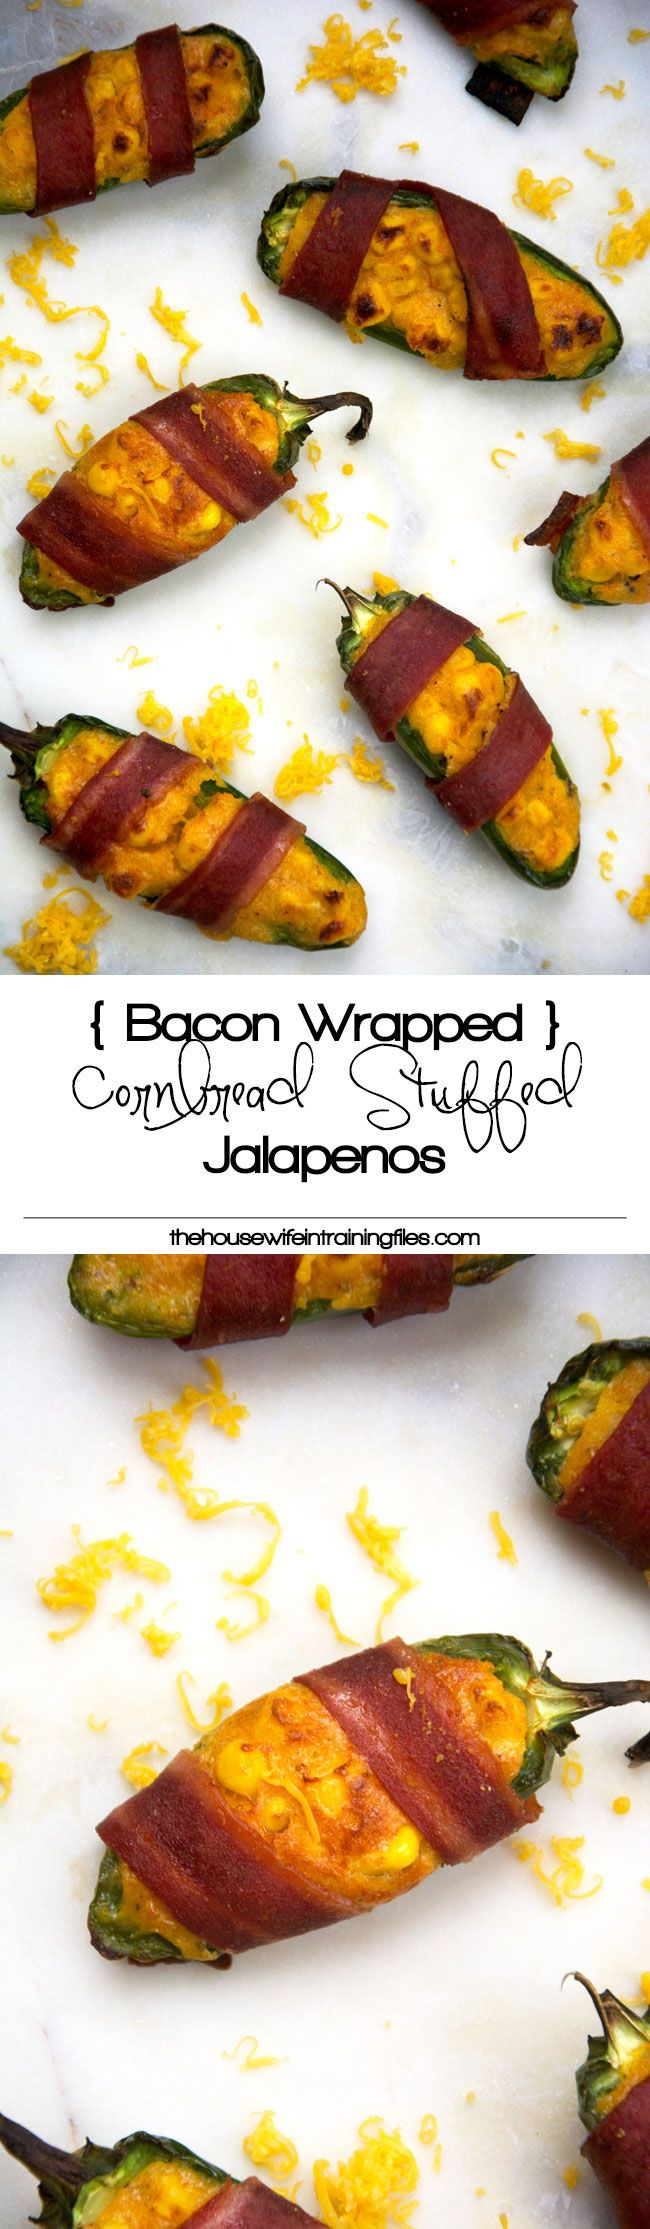 Cheesy Corn Stuffed Jalapenos Cheesy cornbread is stuffed into jalapenos, wrapped in turkey bacon then baked! Surprisingly healthy and completely irresistible!